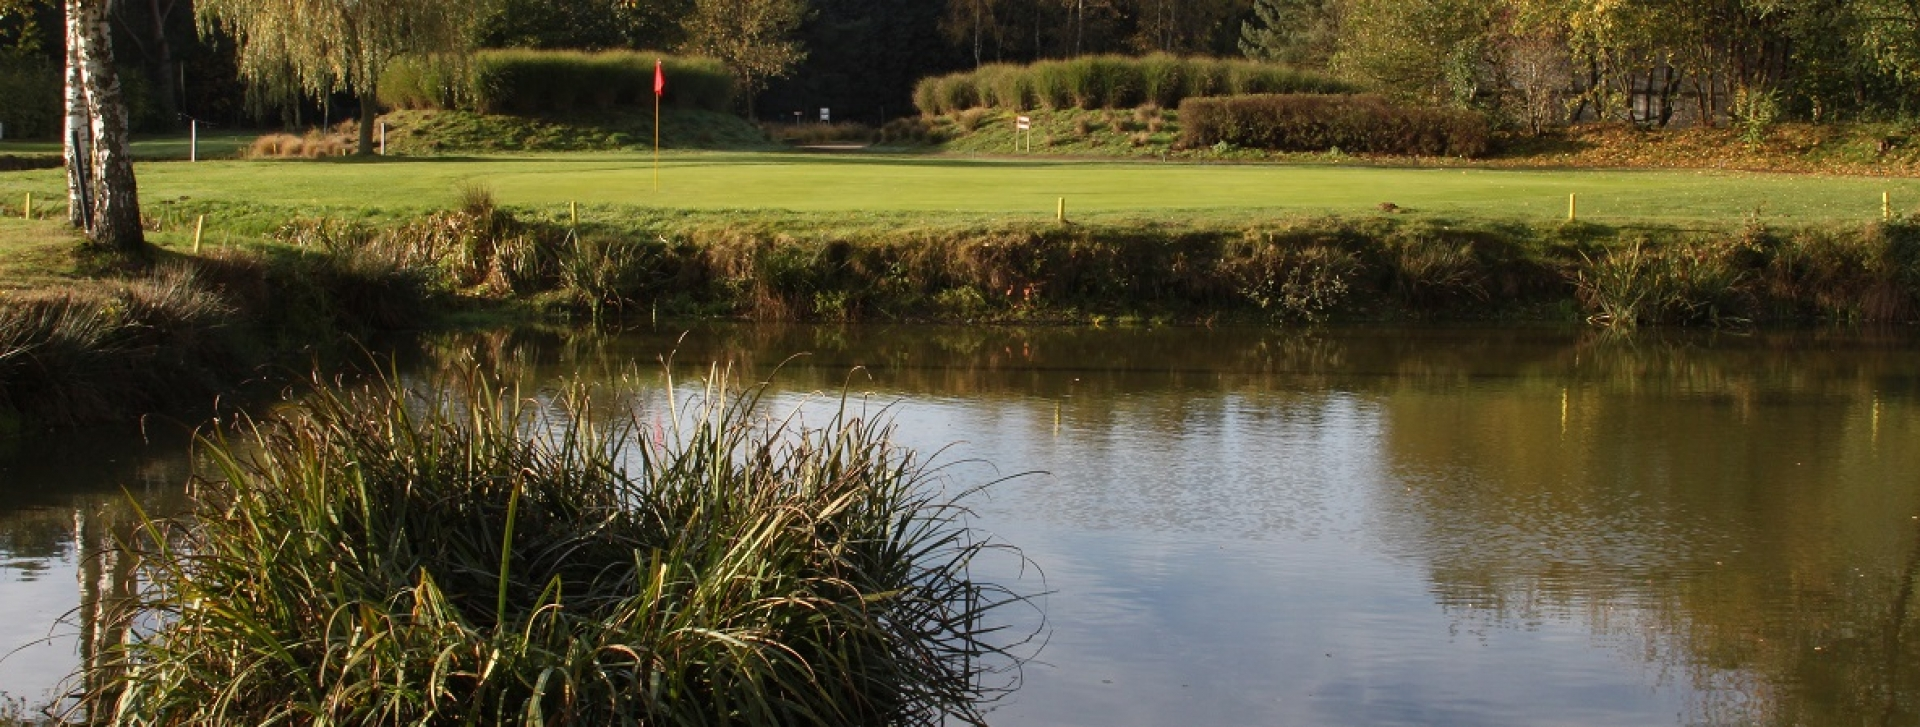 Zondag 27 november - TEXAS SCRAMBLE